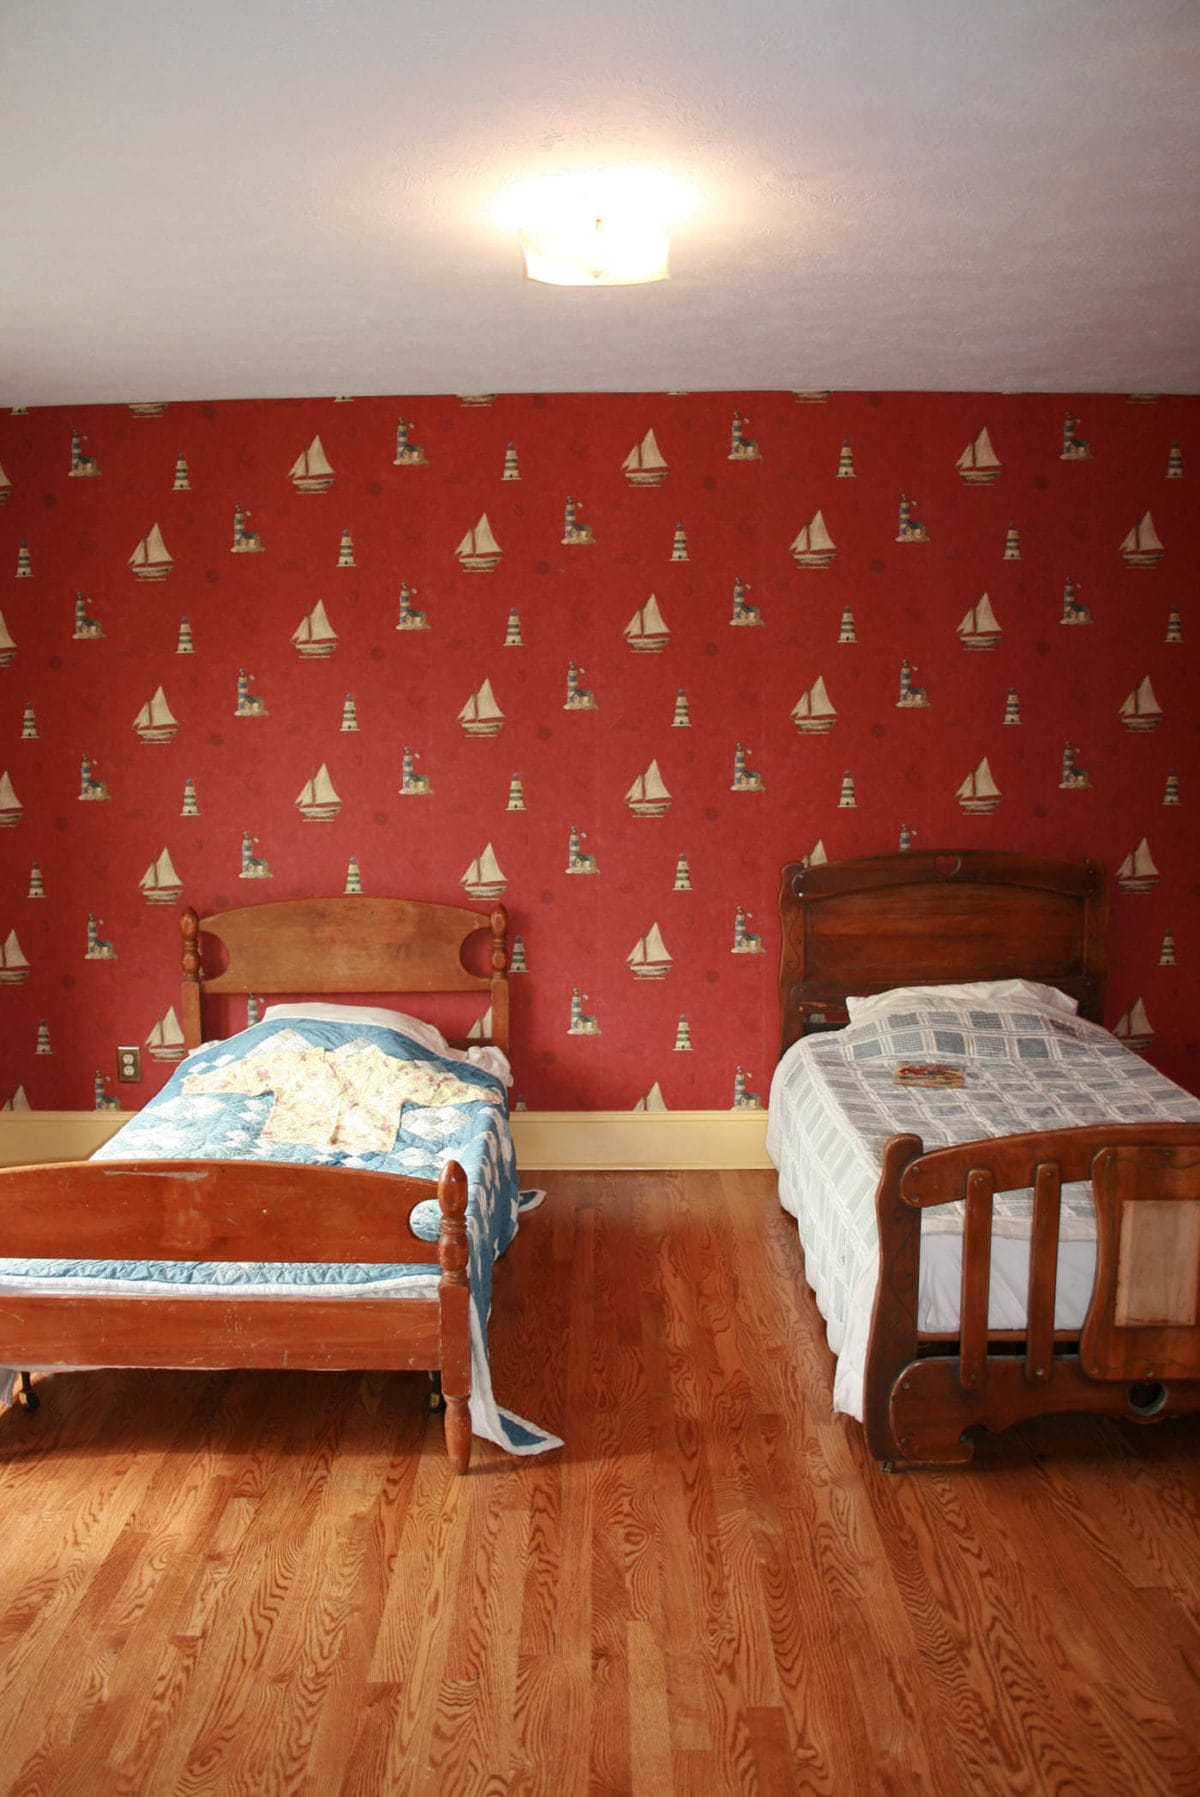 Bedroom - A Christmas Story House in Cleveland, Ohio